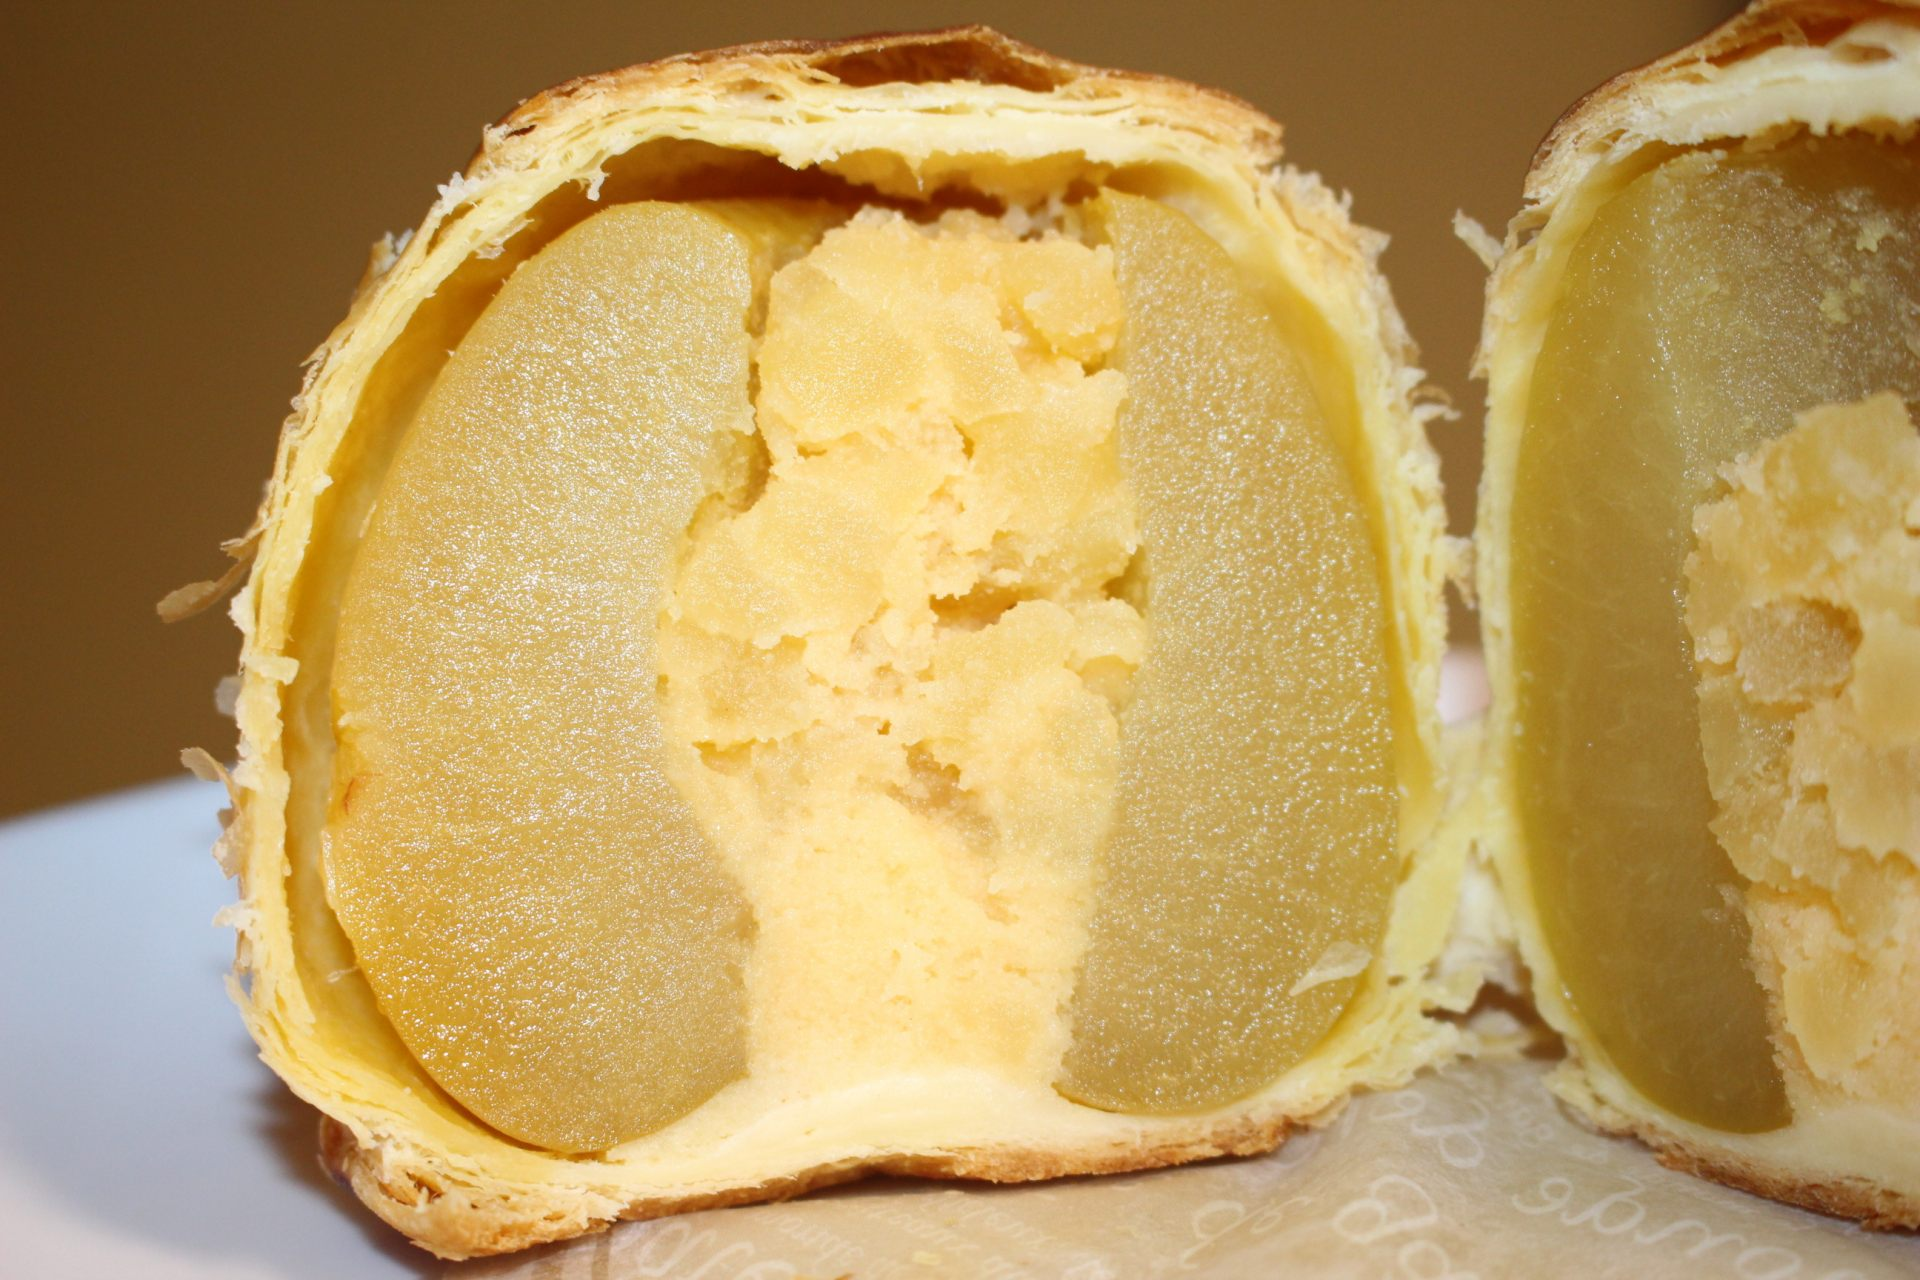 The cross-section view